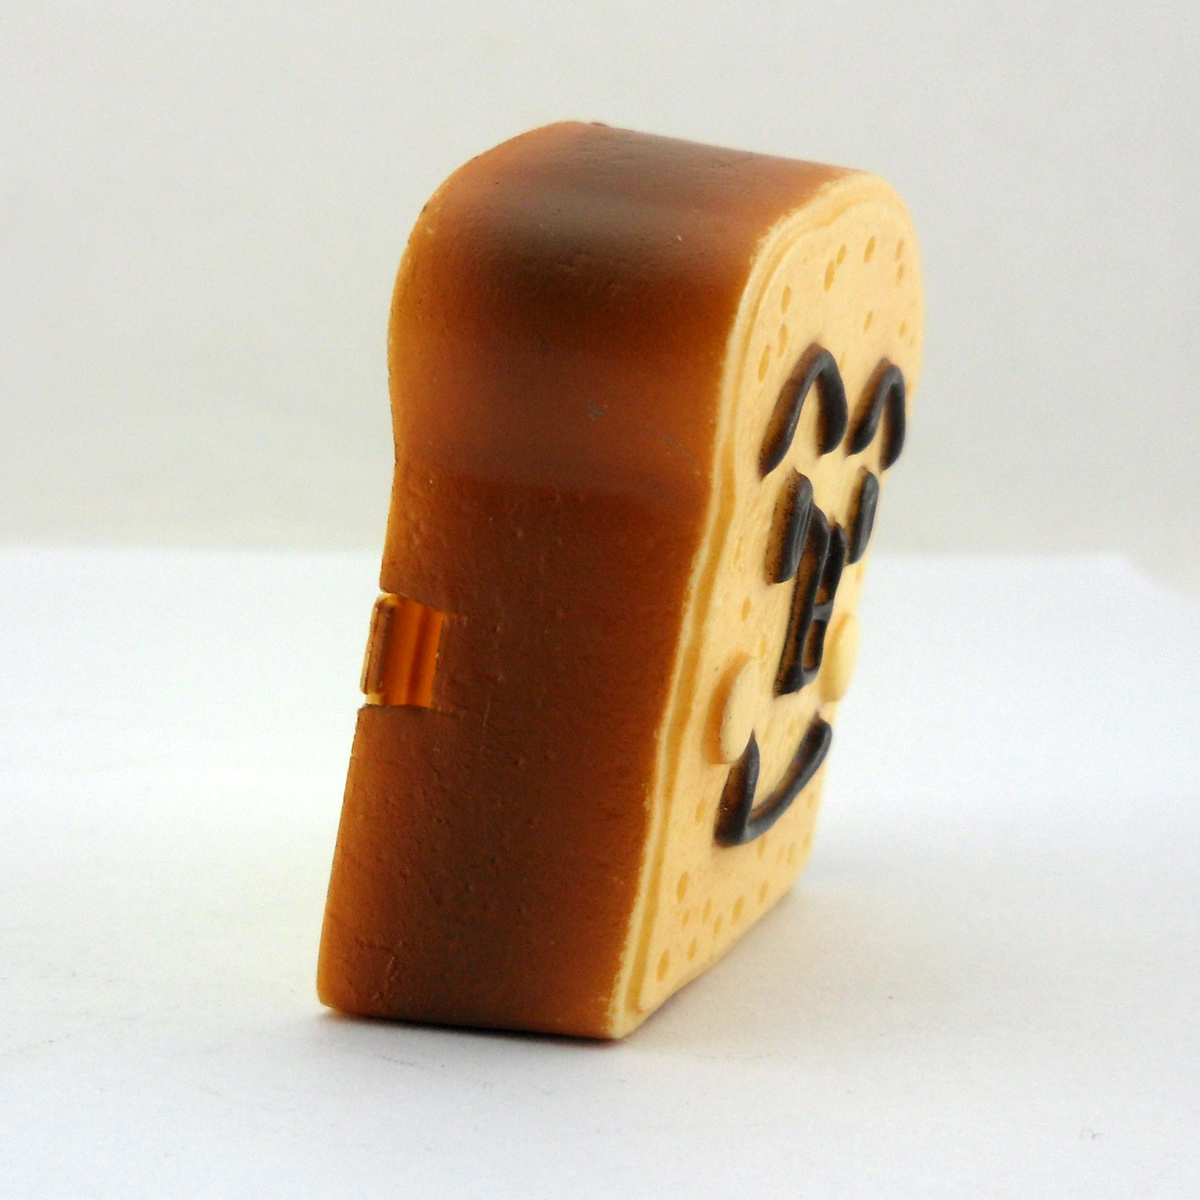 Plastic Bread Toy - OEM